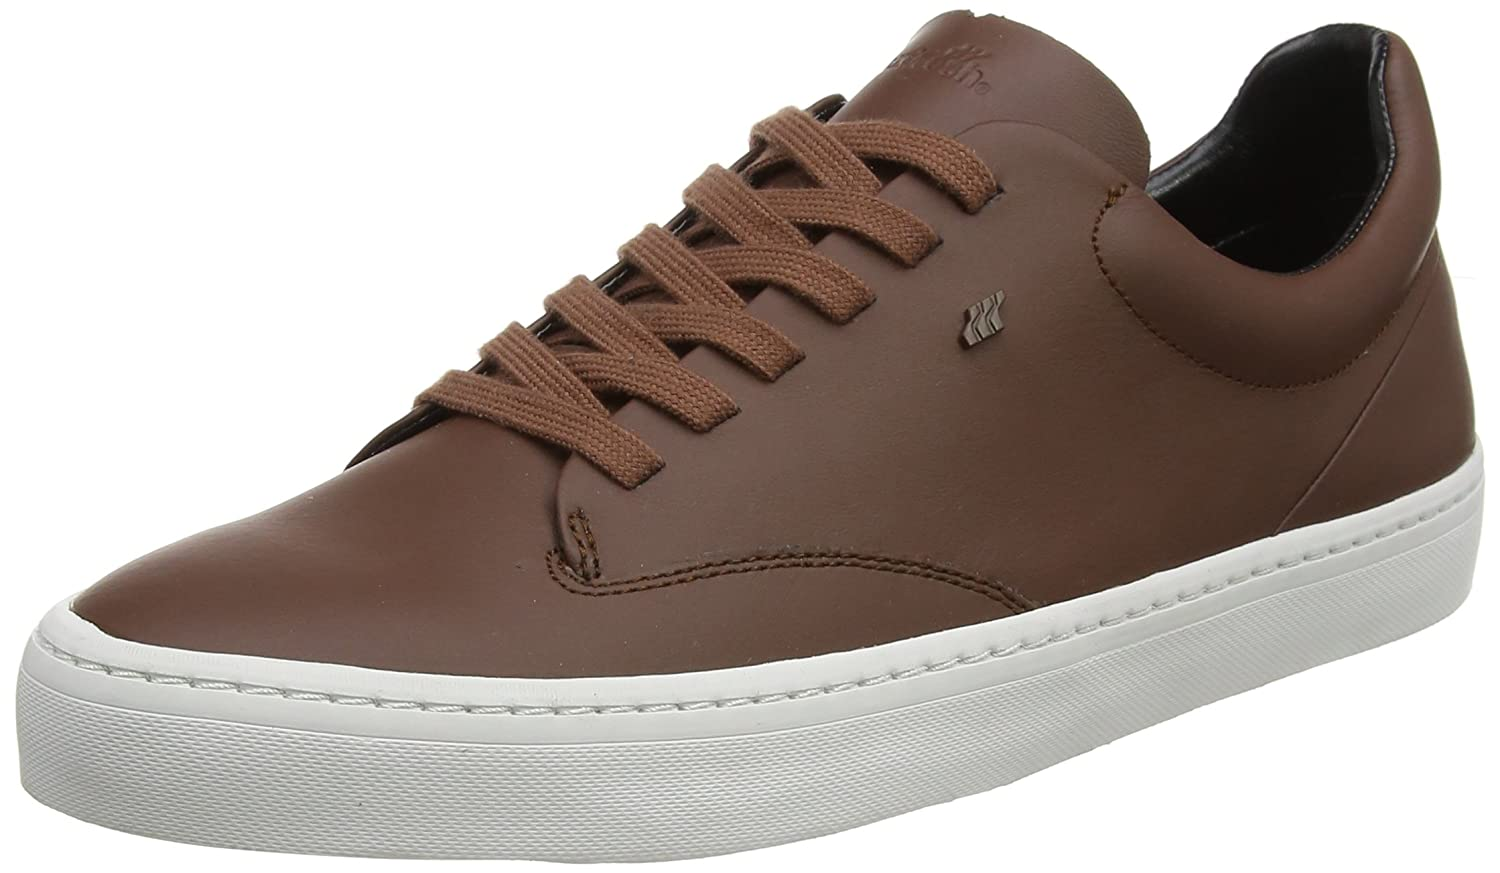 Chaussures Boxfresh Ceza noires Casual homme OgoNxgkgu